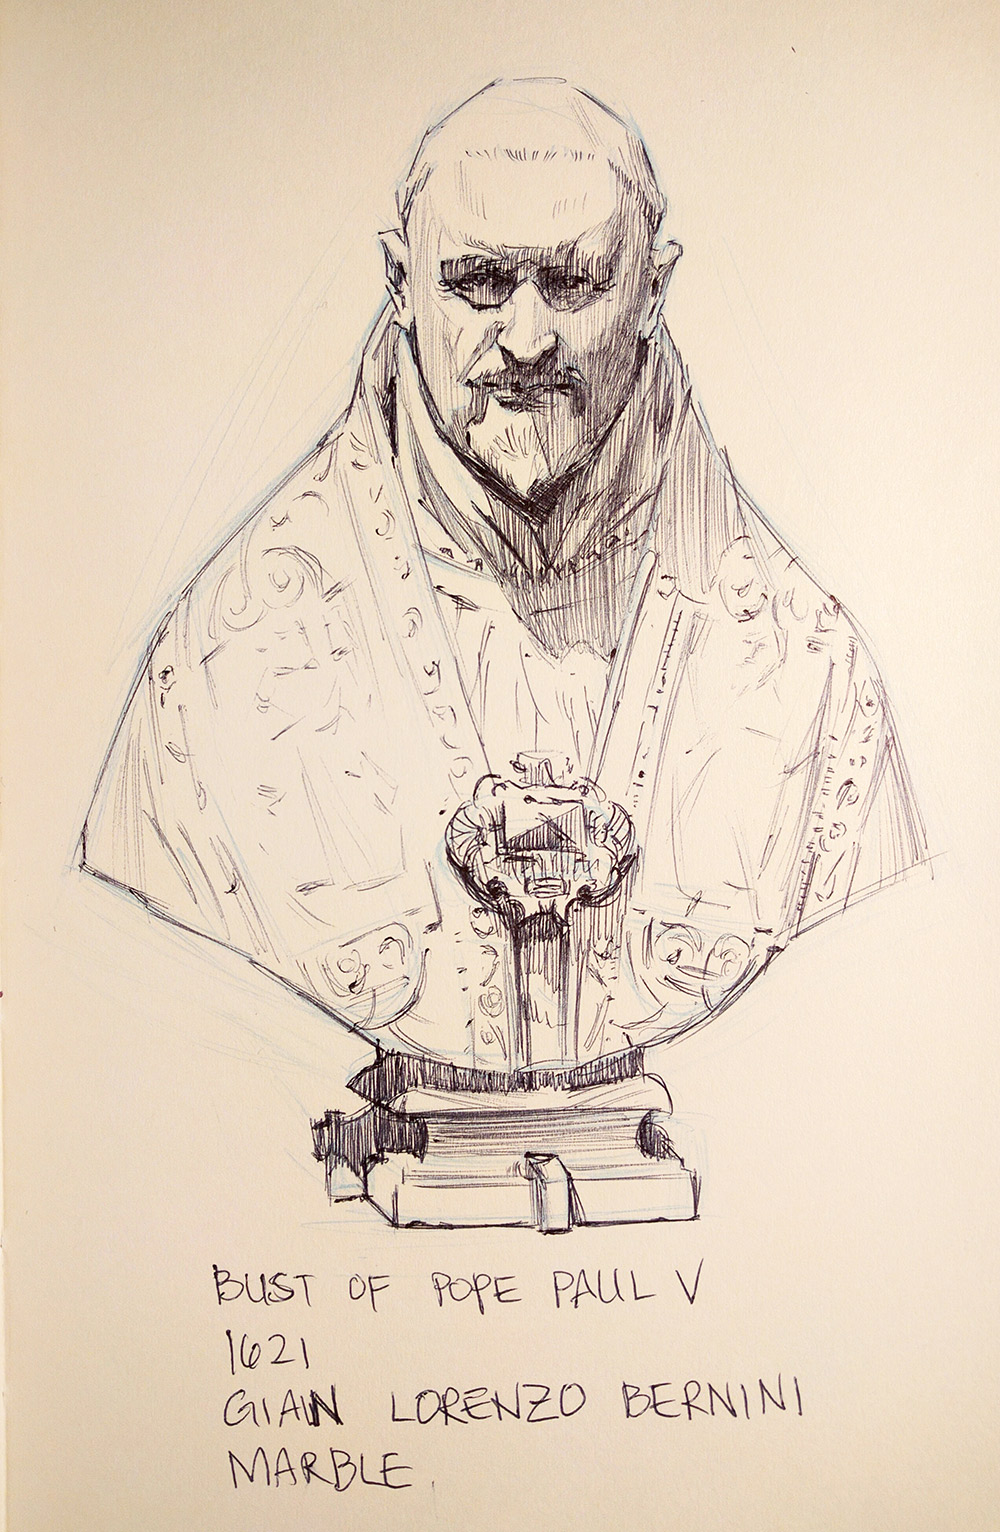 Sketch by Franklin Lei of Bernini's marble Bust of Pope Paul V